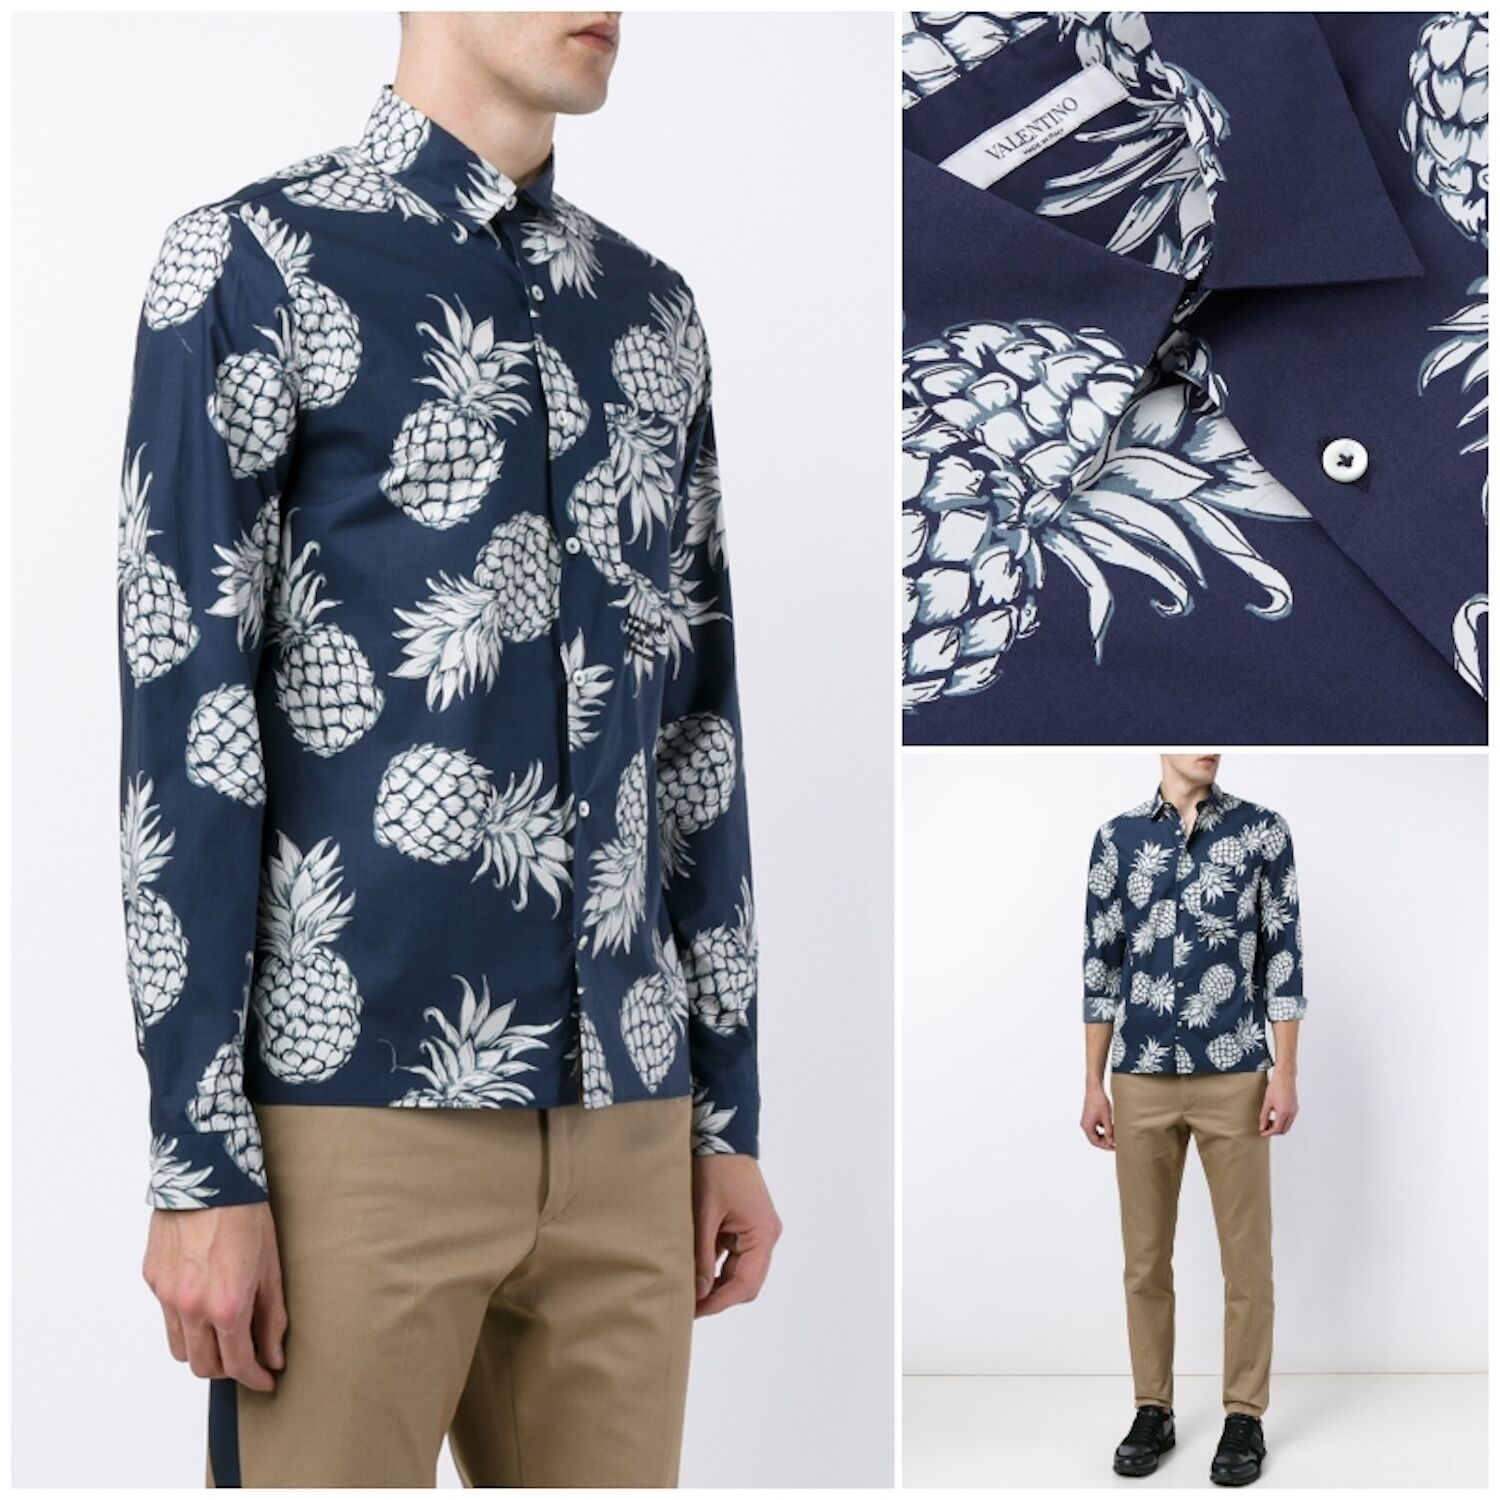 Rare & Great Valentino SS16 Hawaiian Pineapple bluee Print Shirt